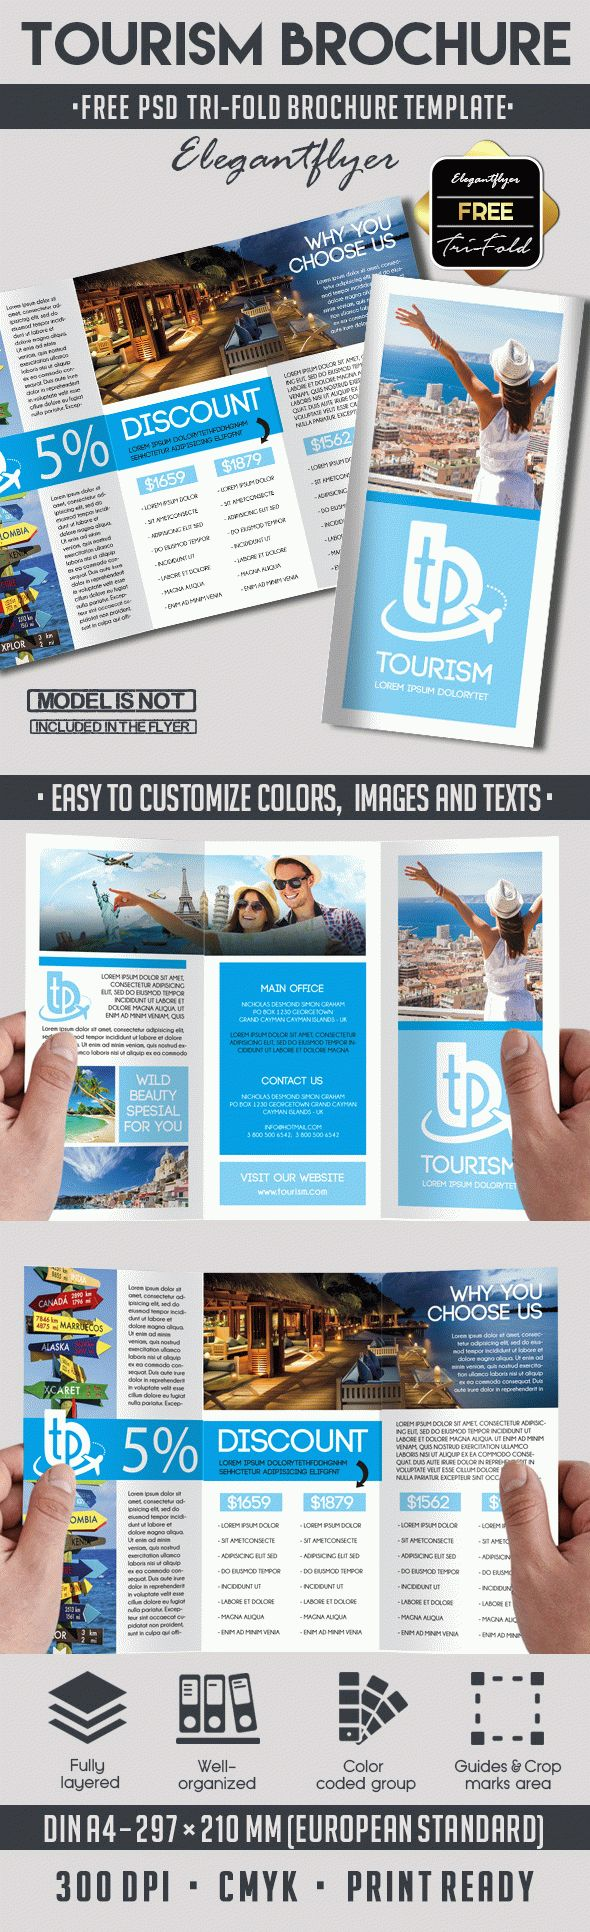 tri fold brochure photoshop template - tourism free psd tri fold psd brochure template by